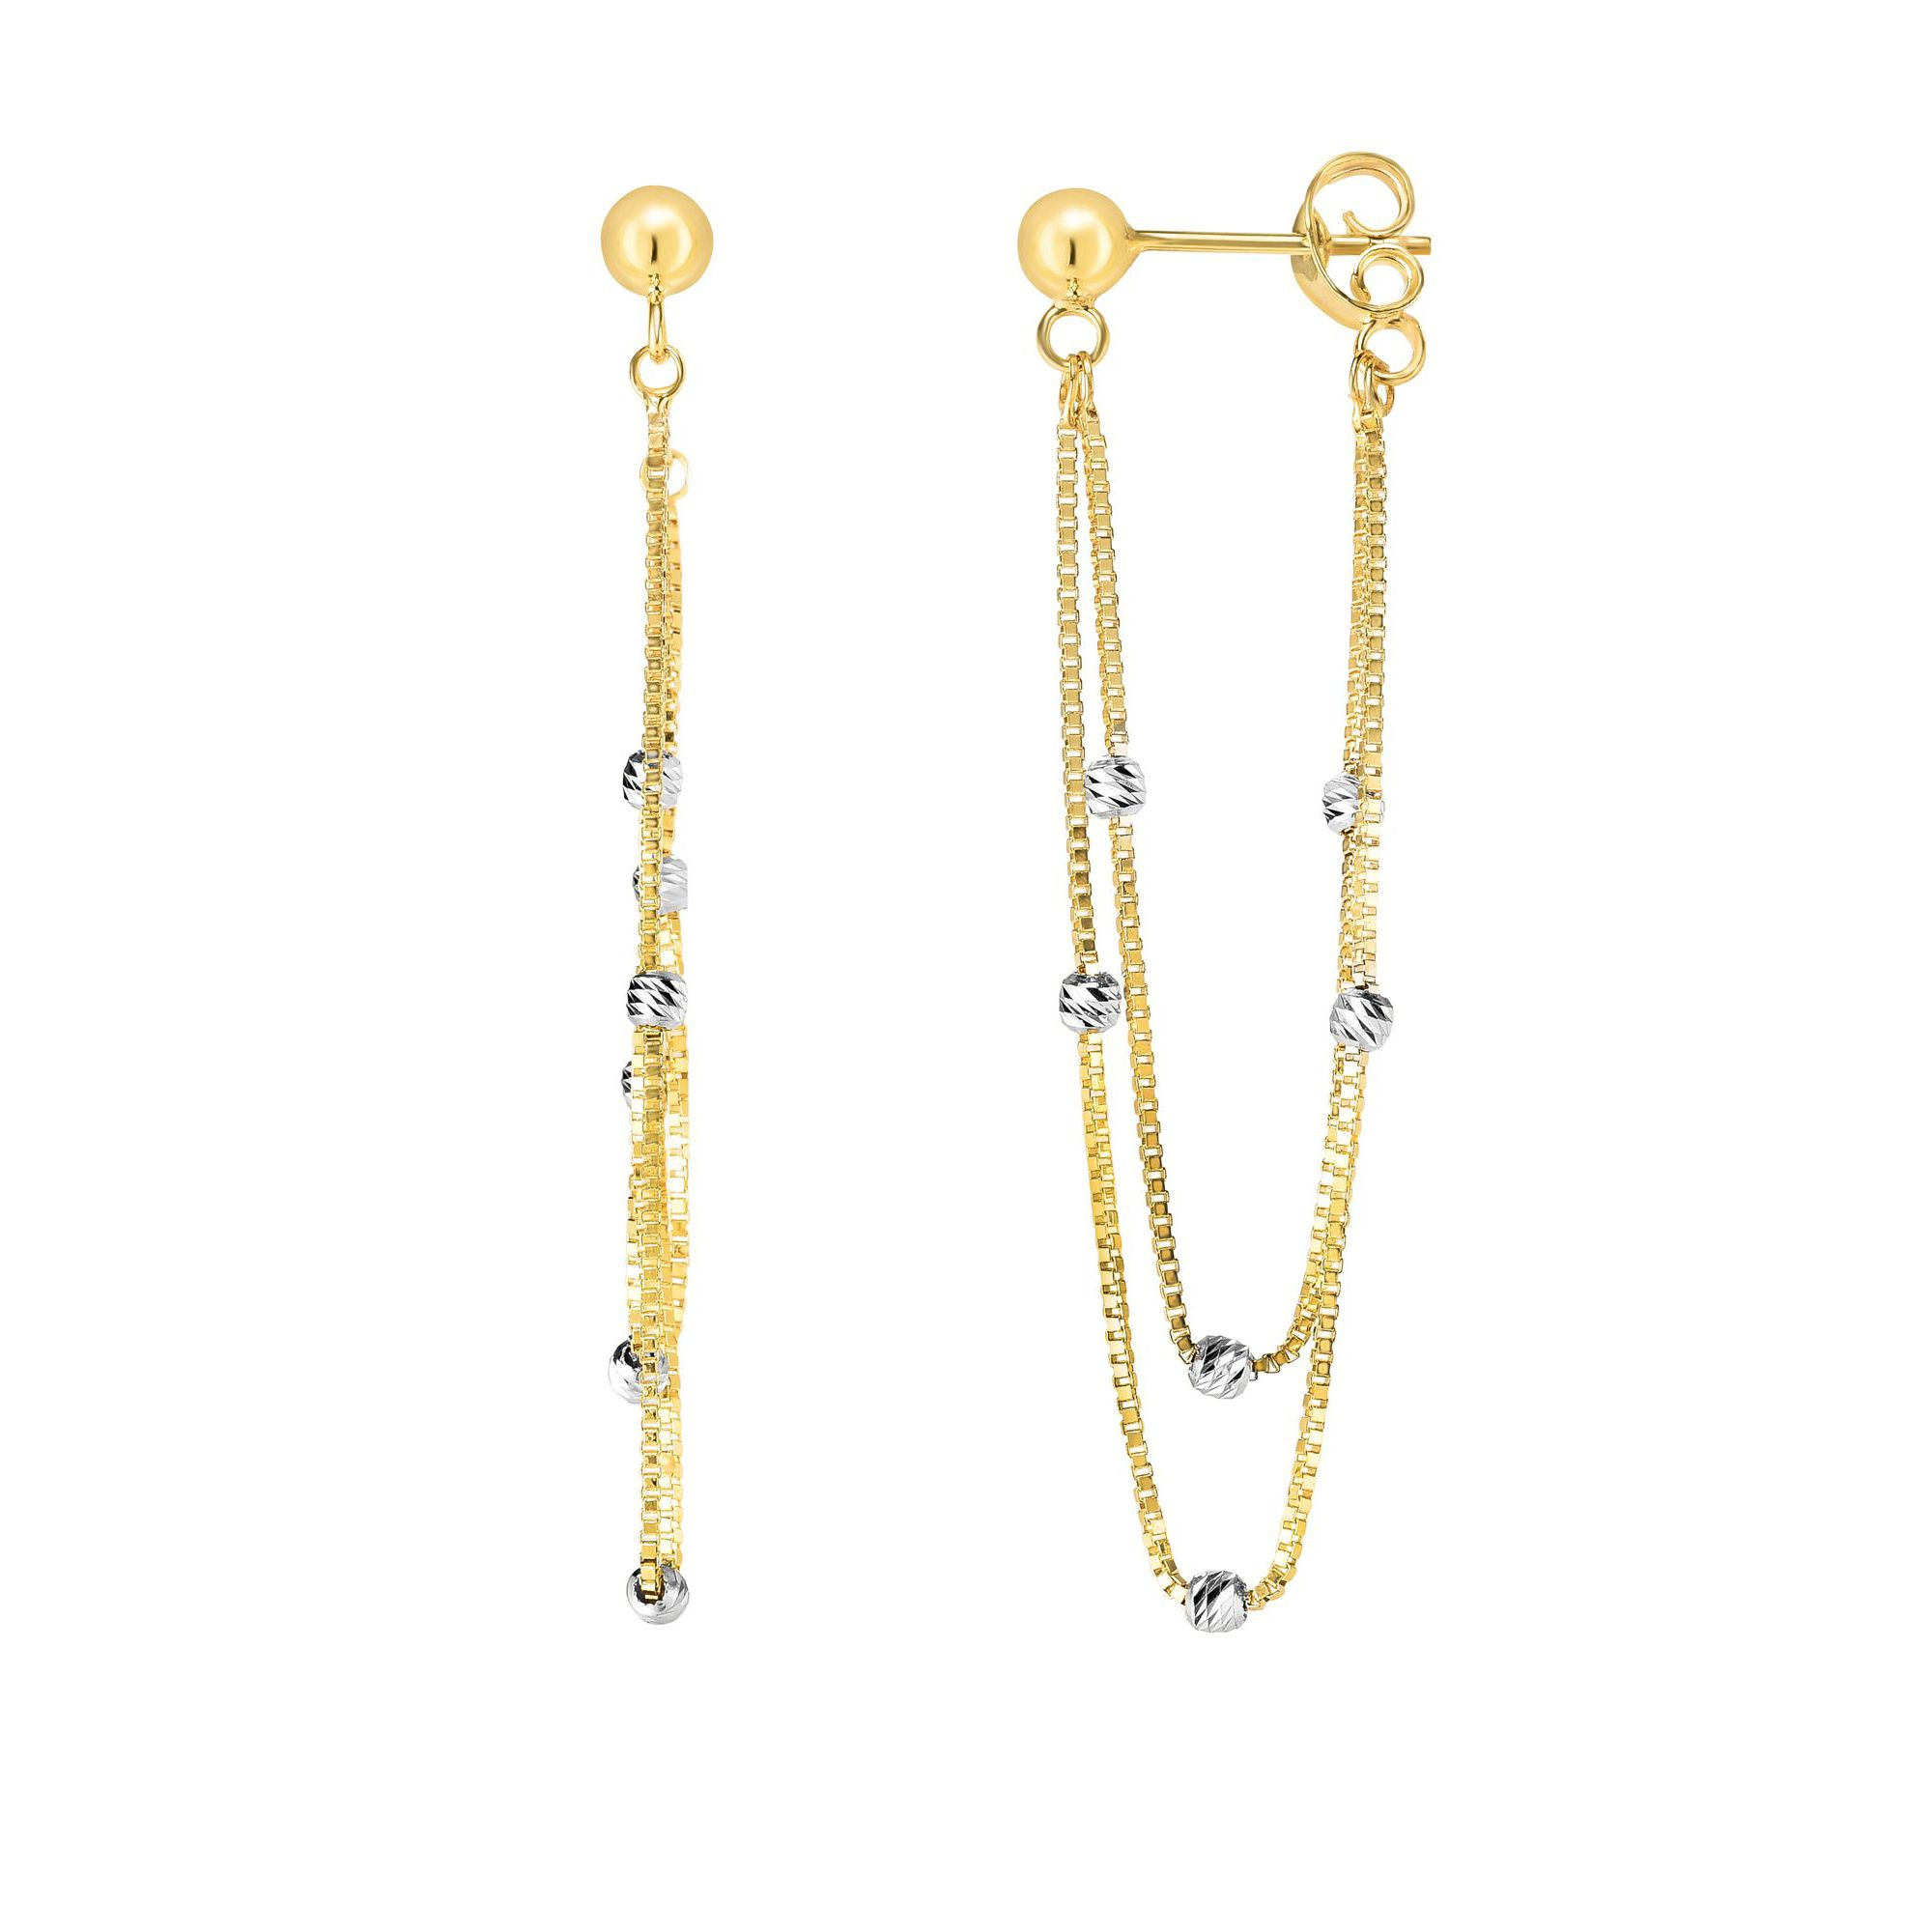 14 Karat Yellow and White Gold Two Tone Dangling Box Chain Earrings